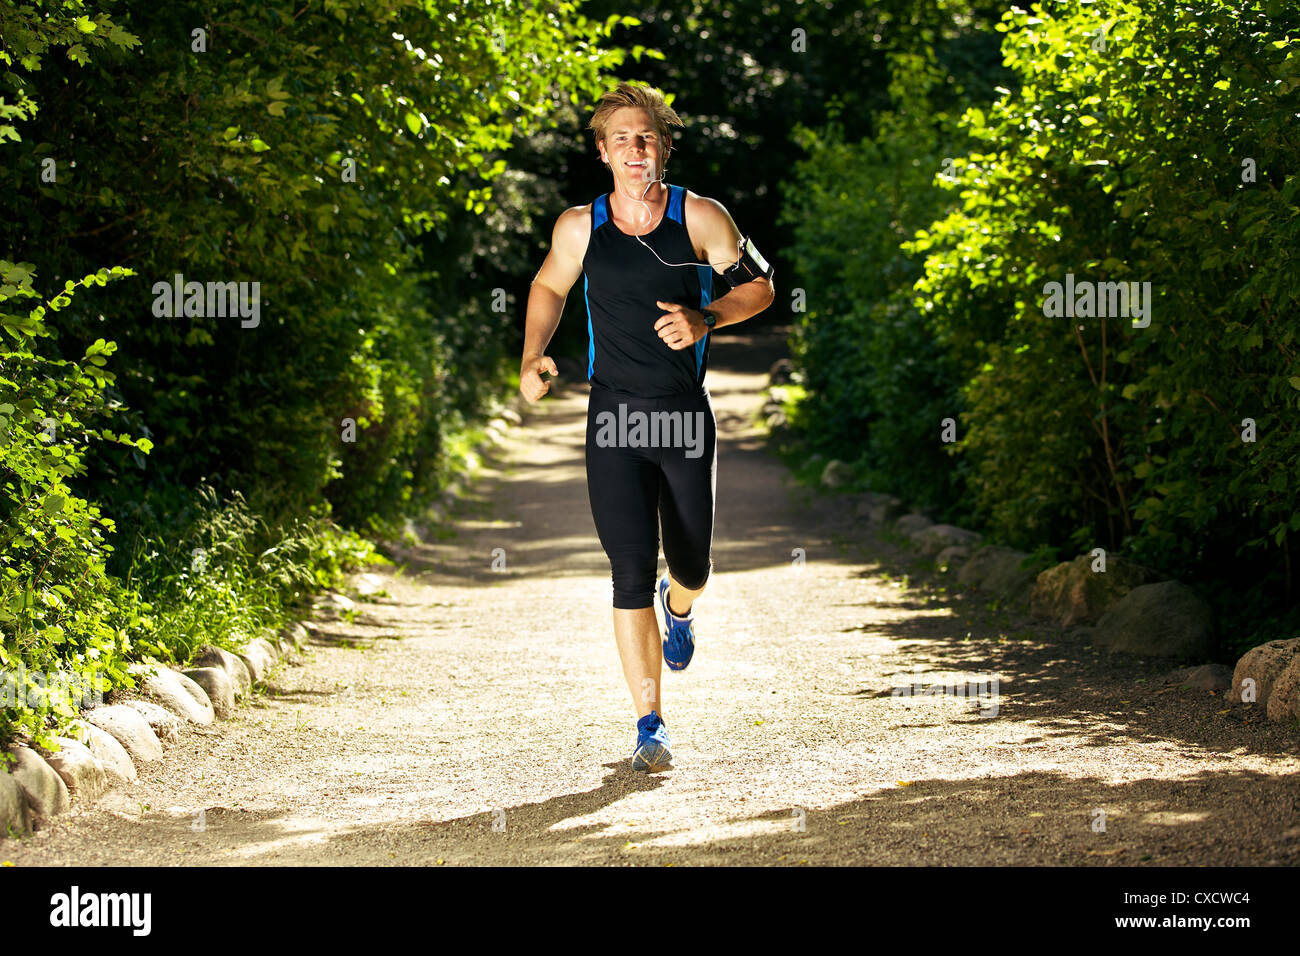 Sweaty man jogging while listening to music - Stock Image